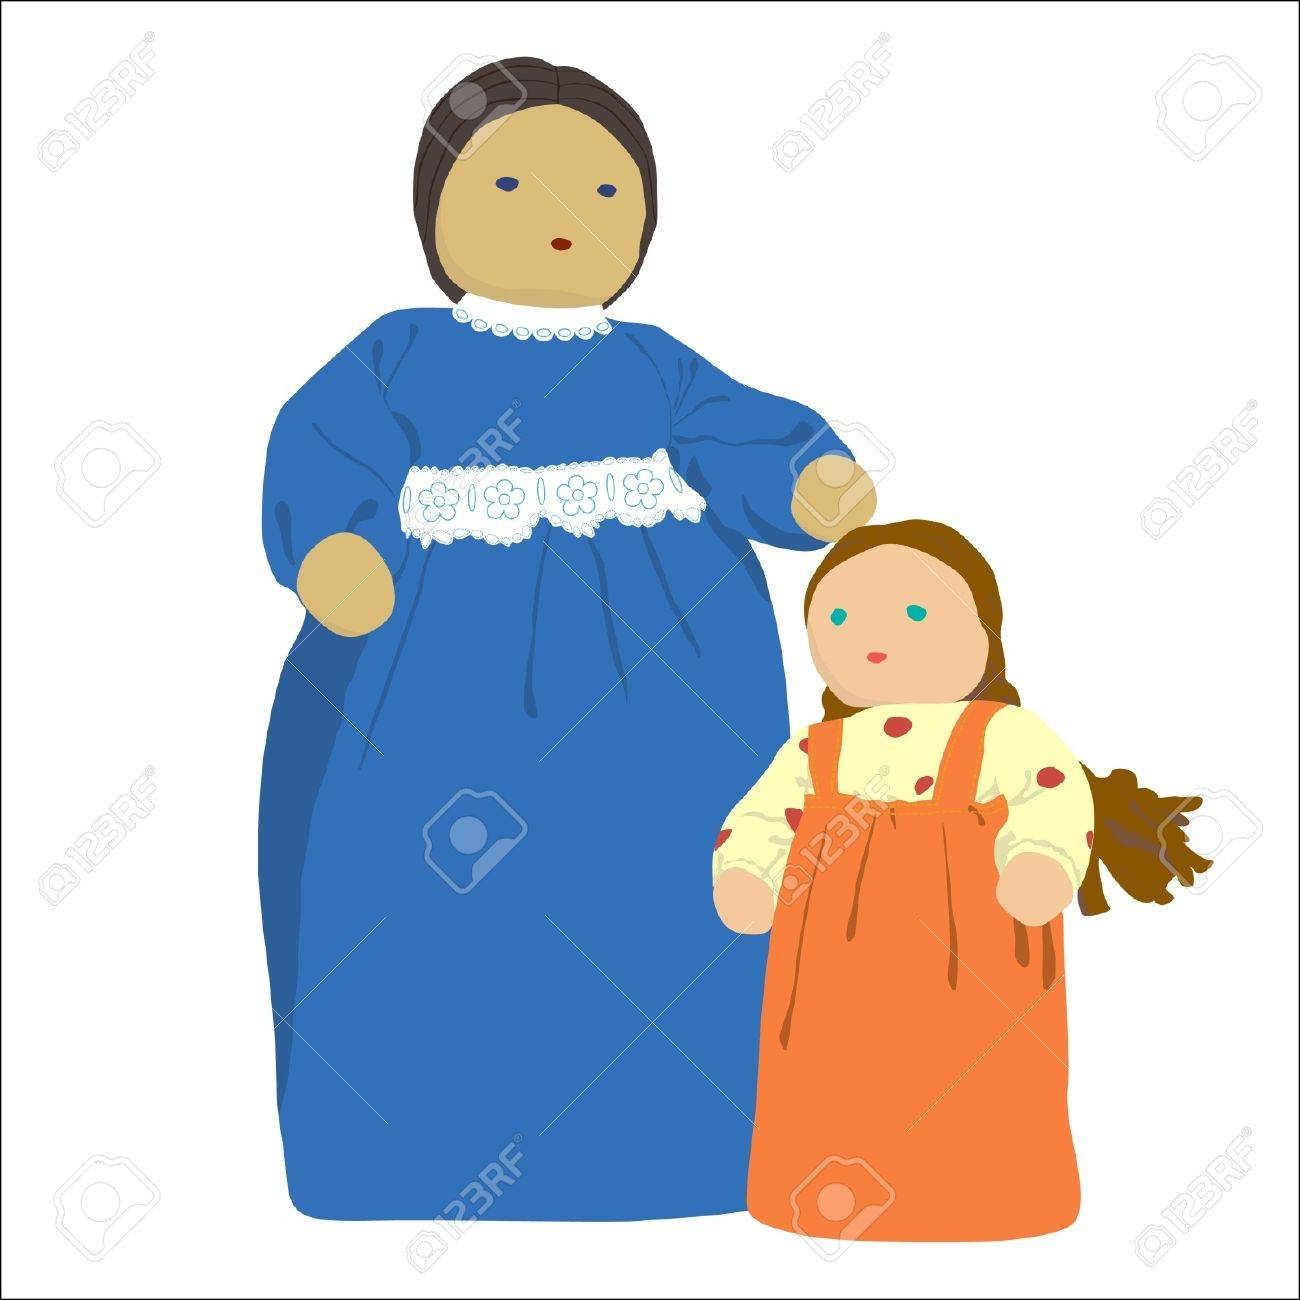 Old fashioned Mother and Daughter illustration  doll  on white background Stock Vector - 13078688